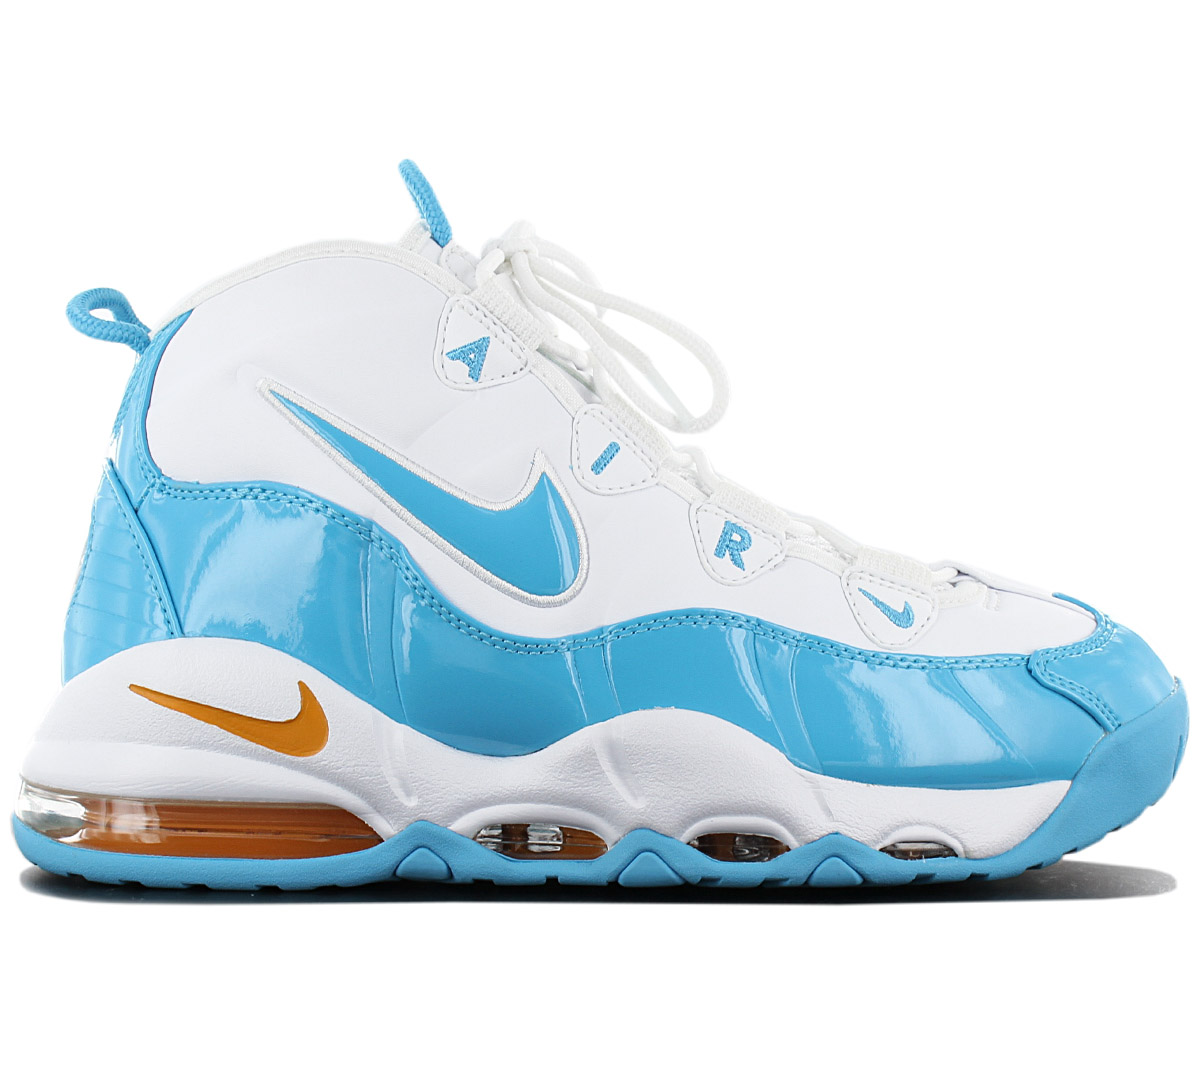 Details about Nike air max Uptempo 95 Men's Sneaker CK0892 100 Basketball Shoes Shoes White